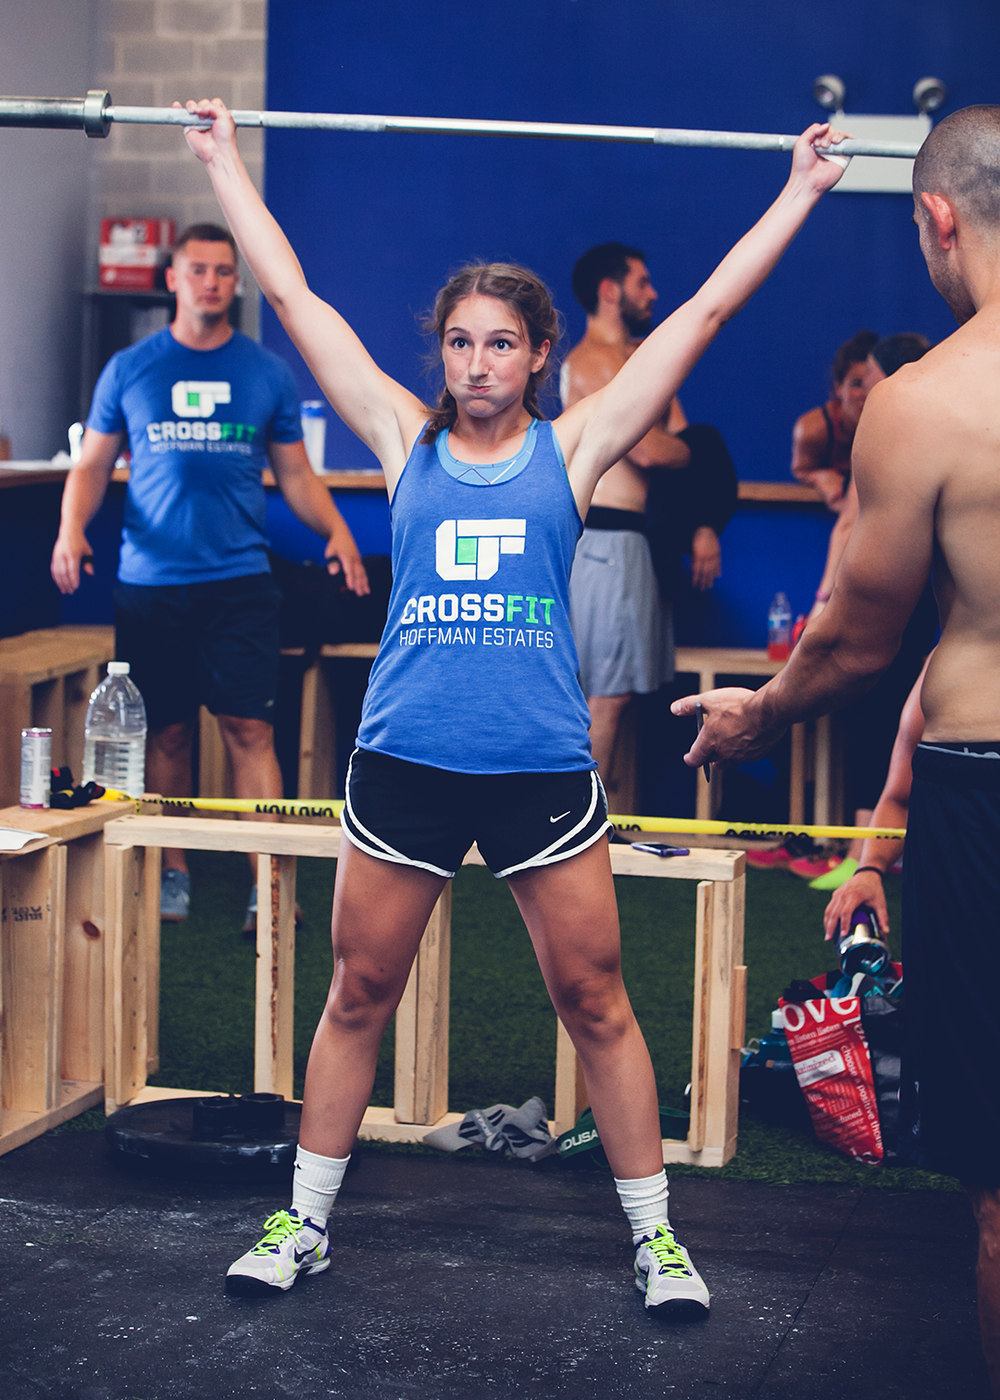 crossfit-hoffman-estates-2016-226_RT.png